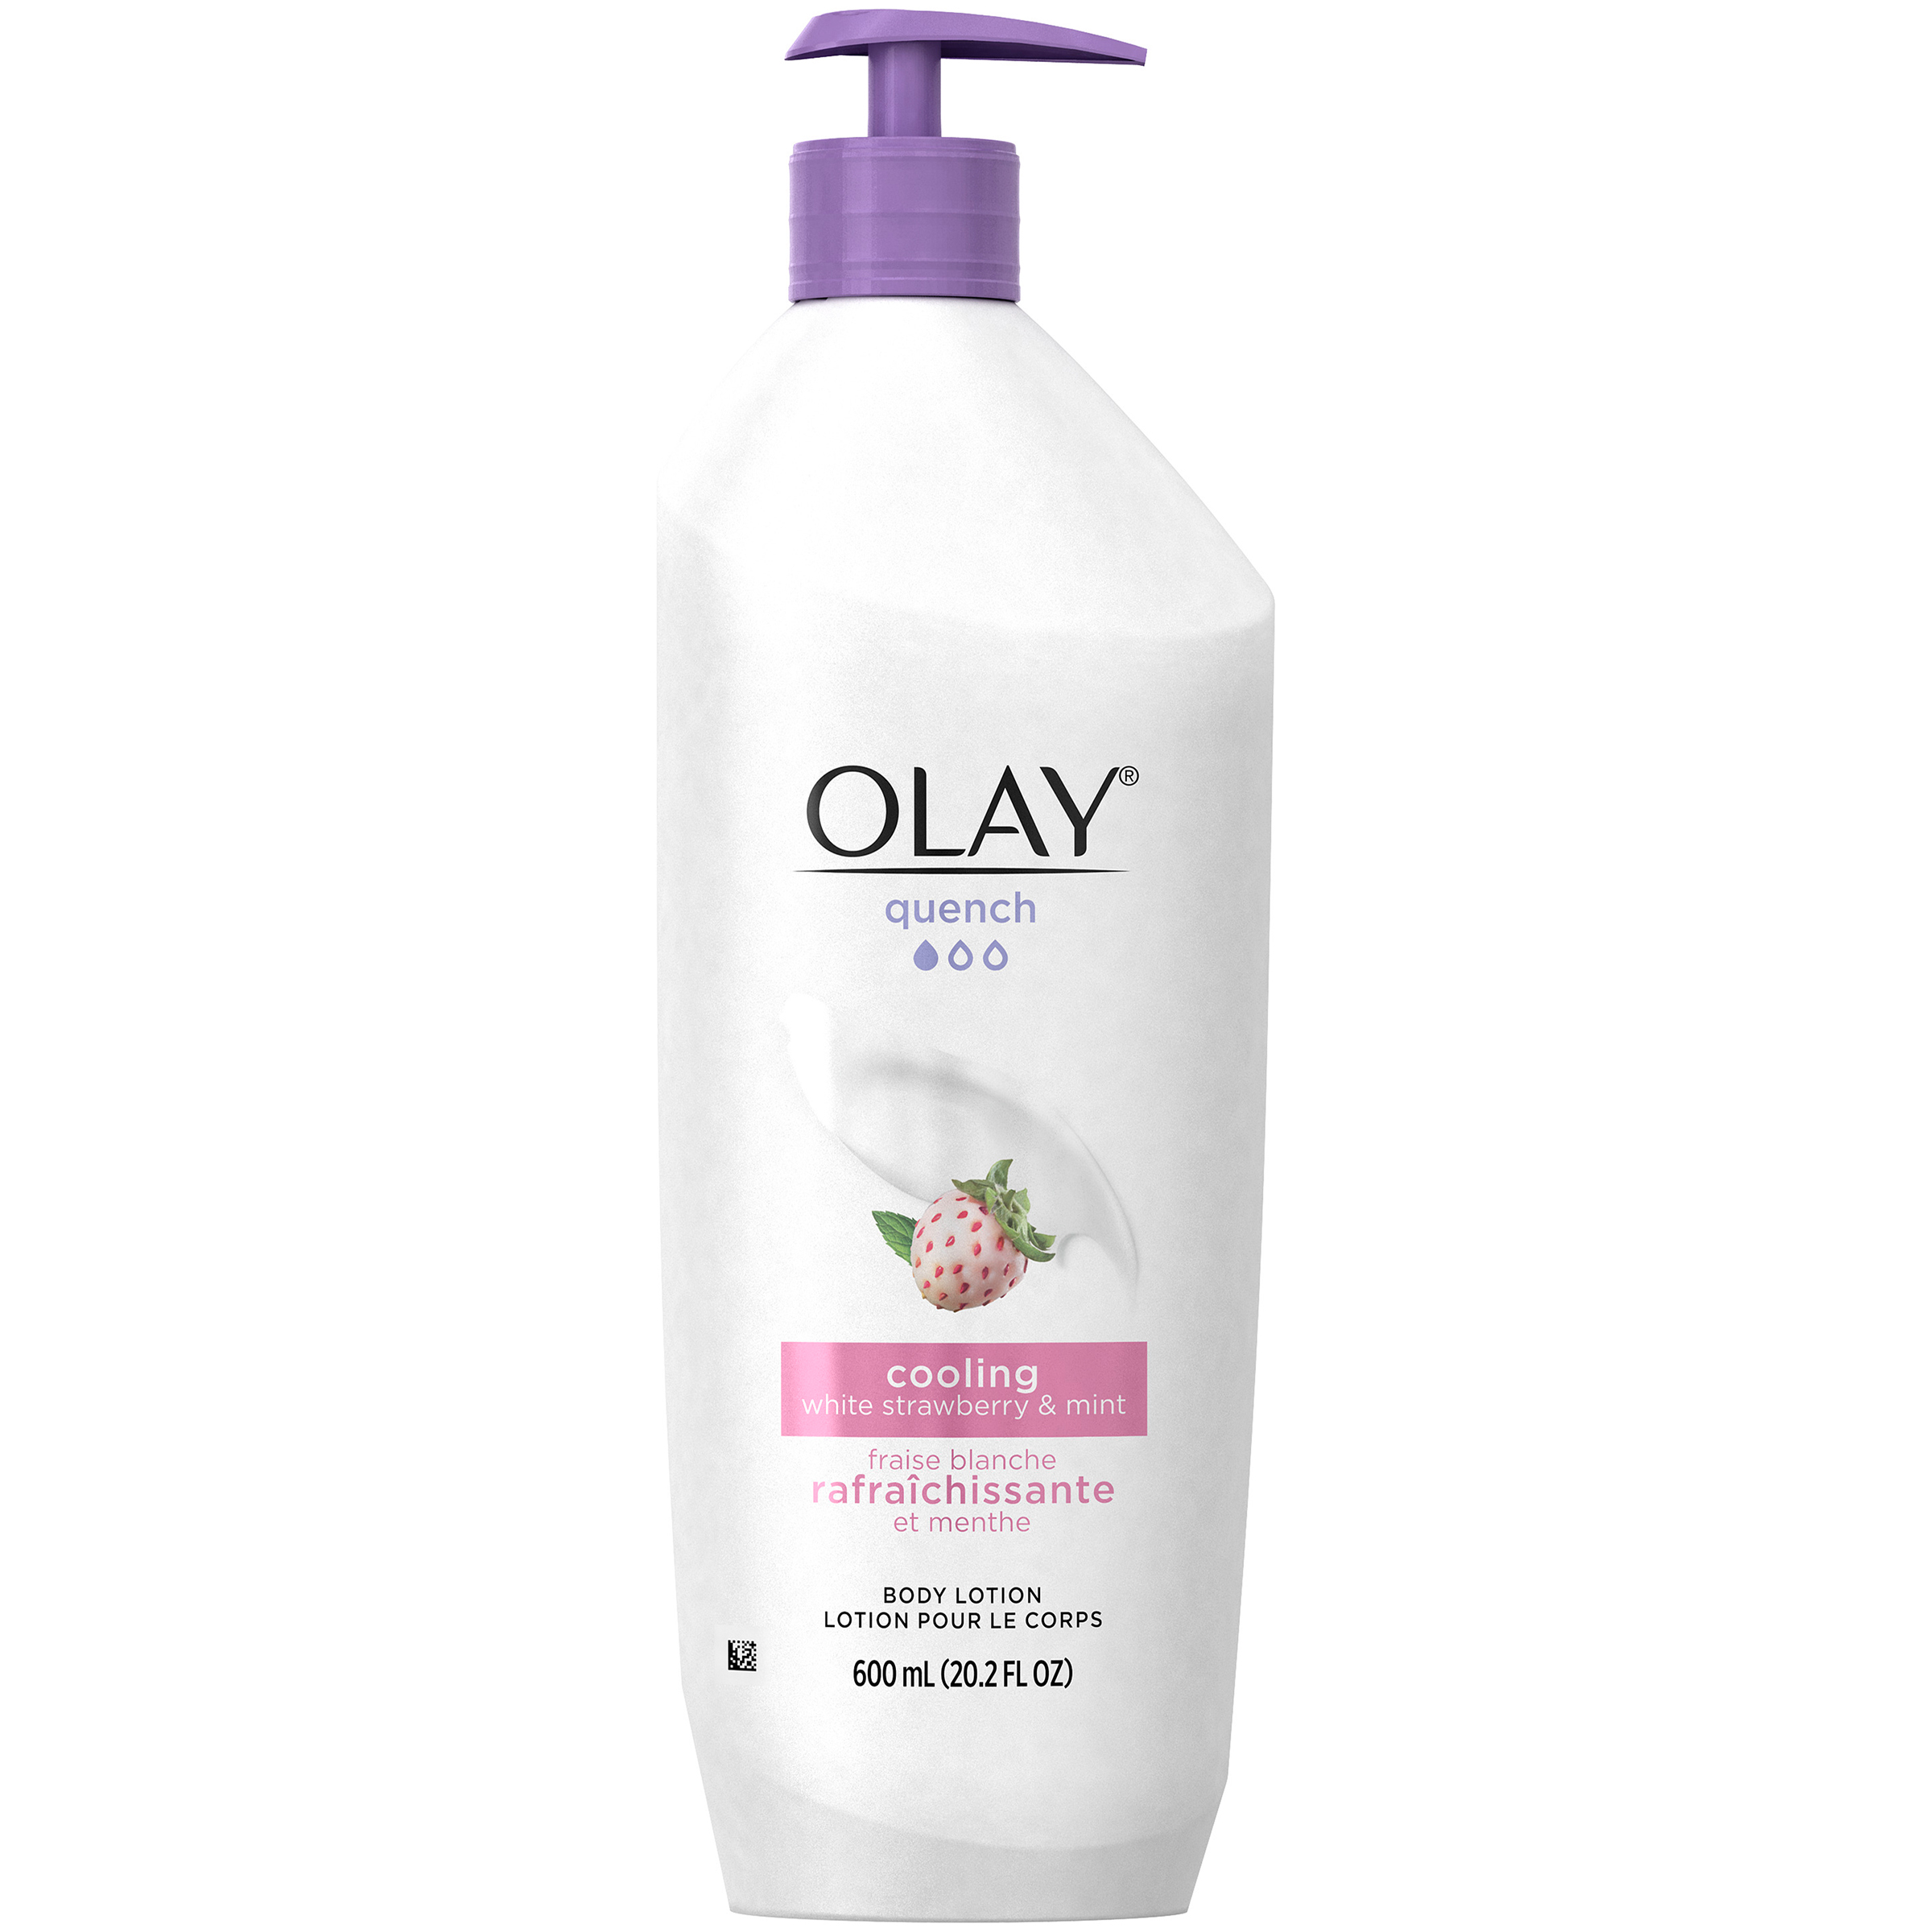 Olay® Quench Cooling White Strawberry & Mint Body Lotion 20.2 fl. oz. Pump